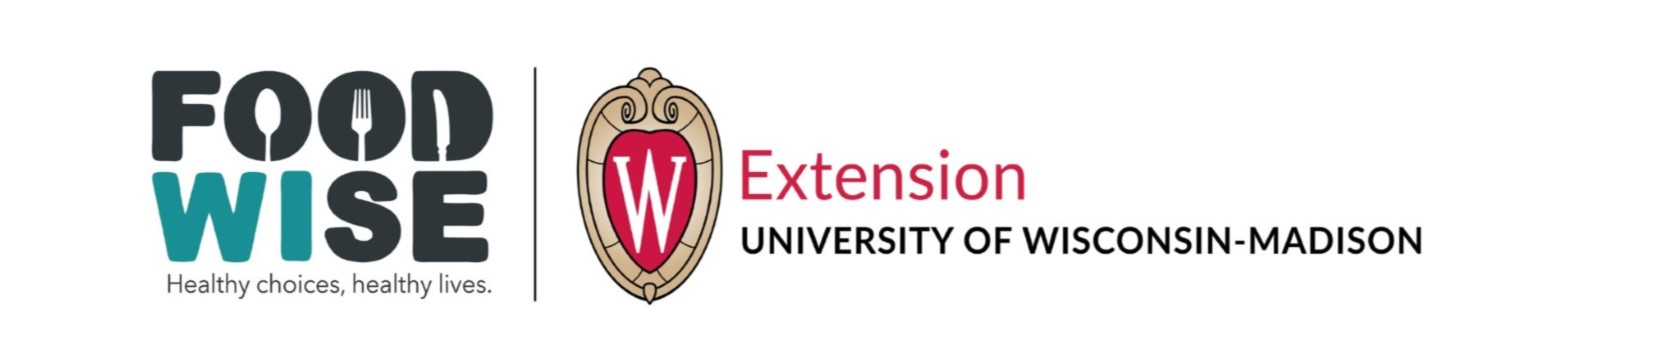 FoodWIse and UW Madison Extension Logo